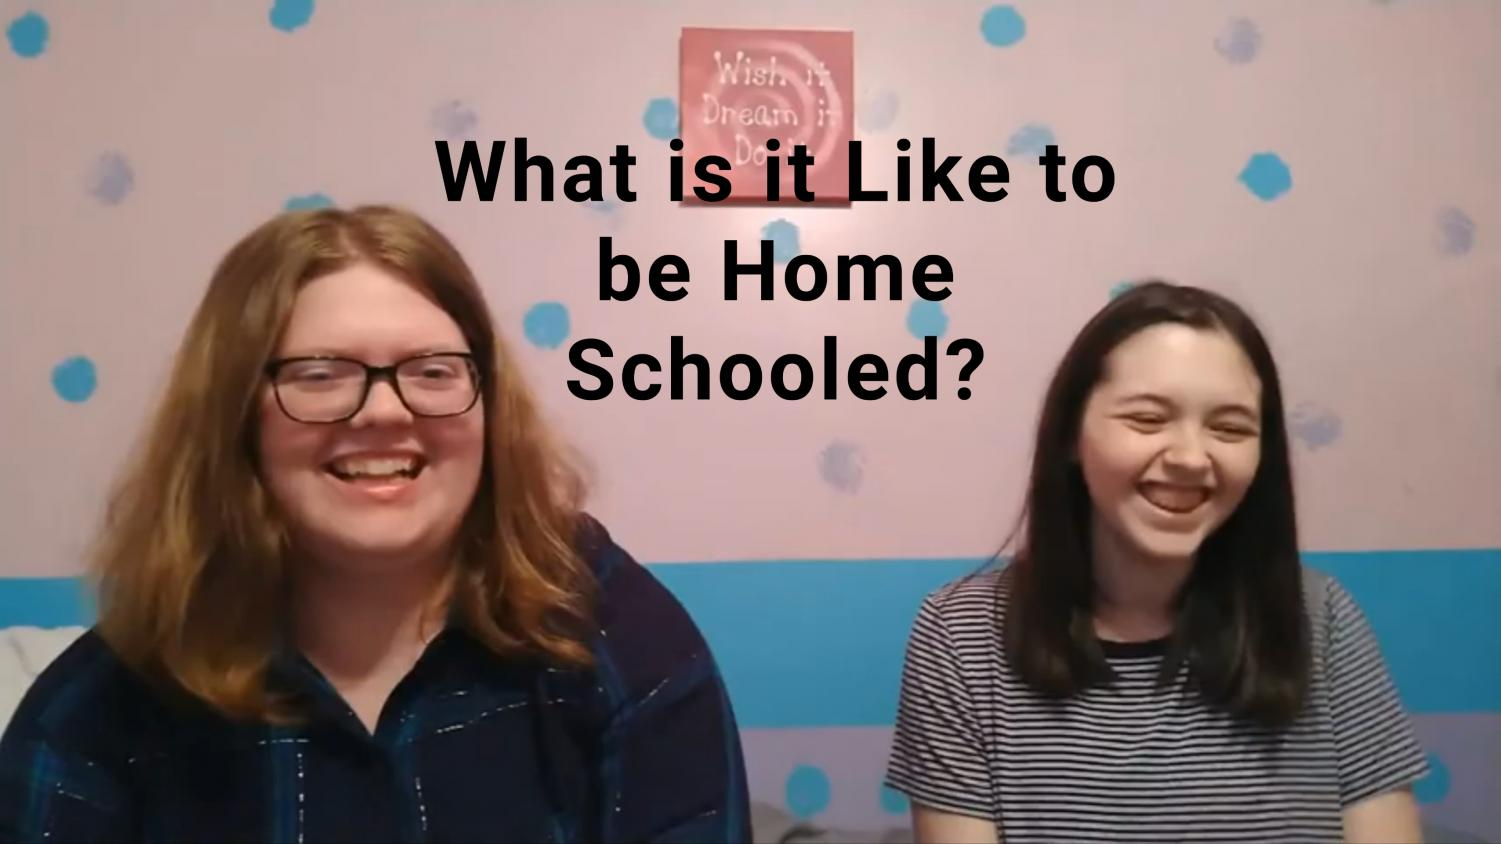 What's it Like Being a Home-schooled Student?